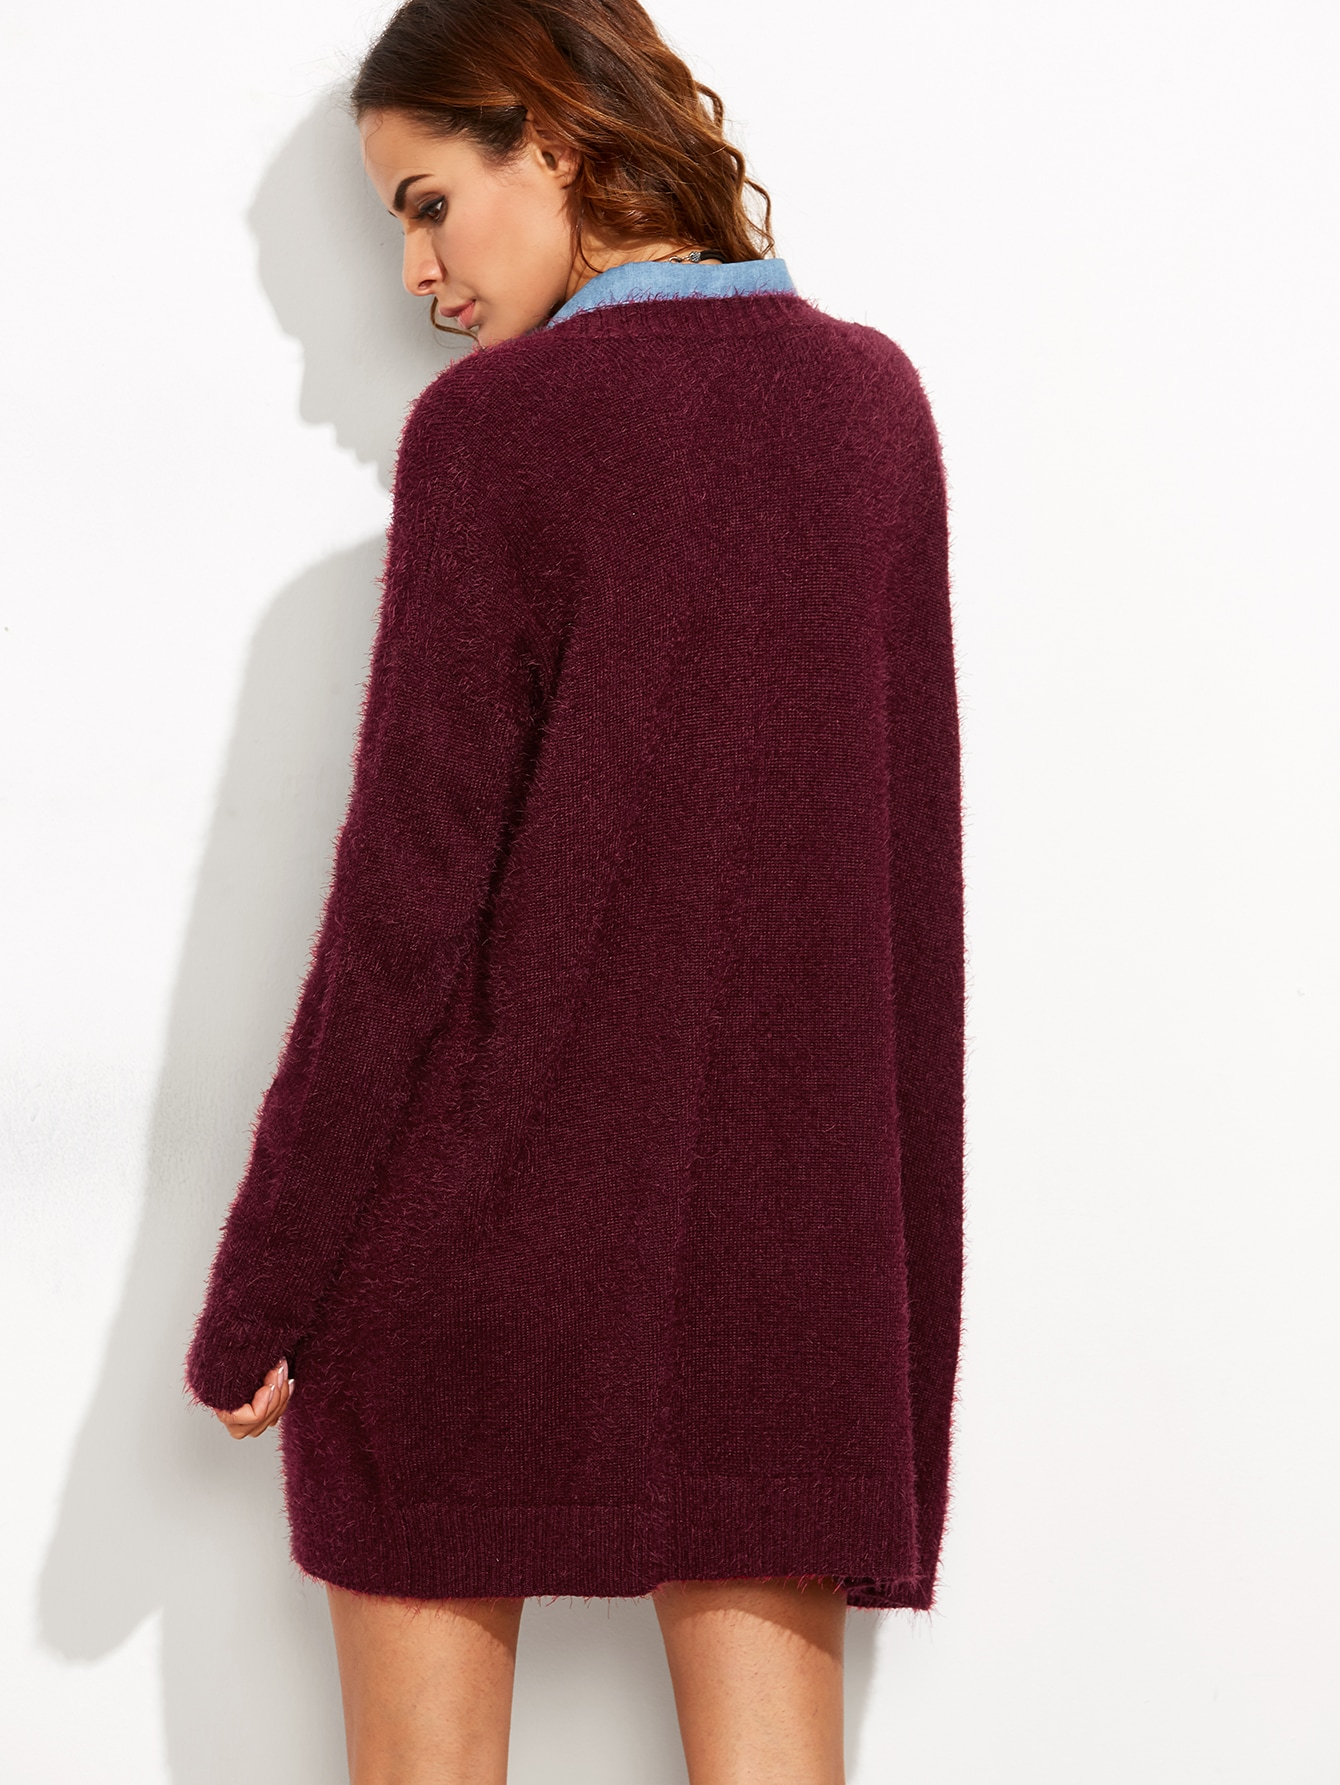 Burgundy Open Front Fluffy Sweater Coat With Pockets Sheinsheinside Tendencies Short Shirts Basic Long Collar Less Wine S